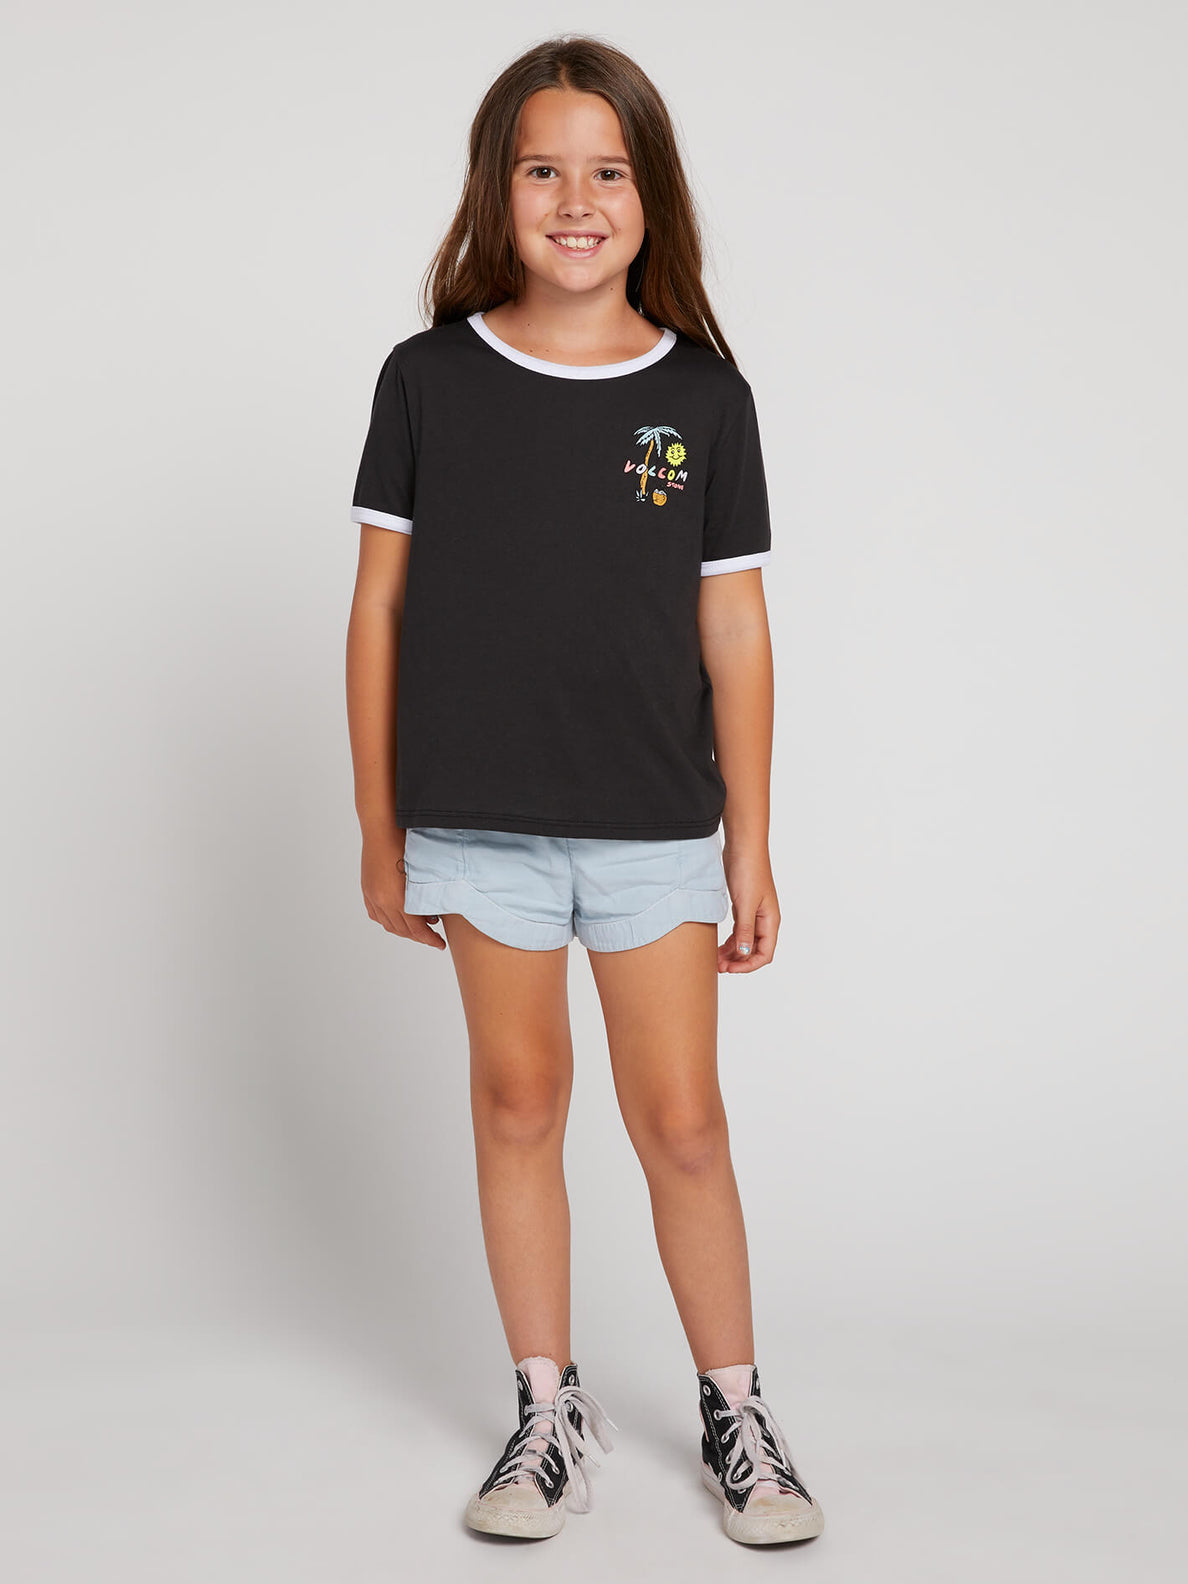 Big Girls Hey Slims Tee In Black Combo, Front View